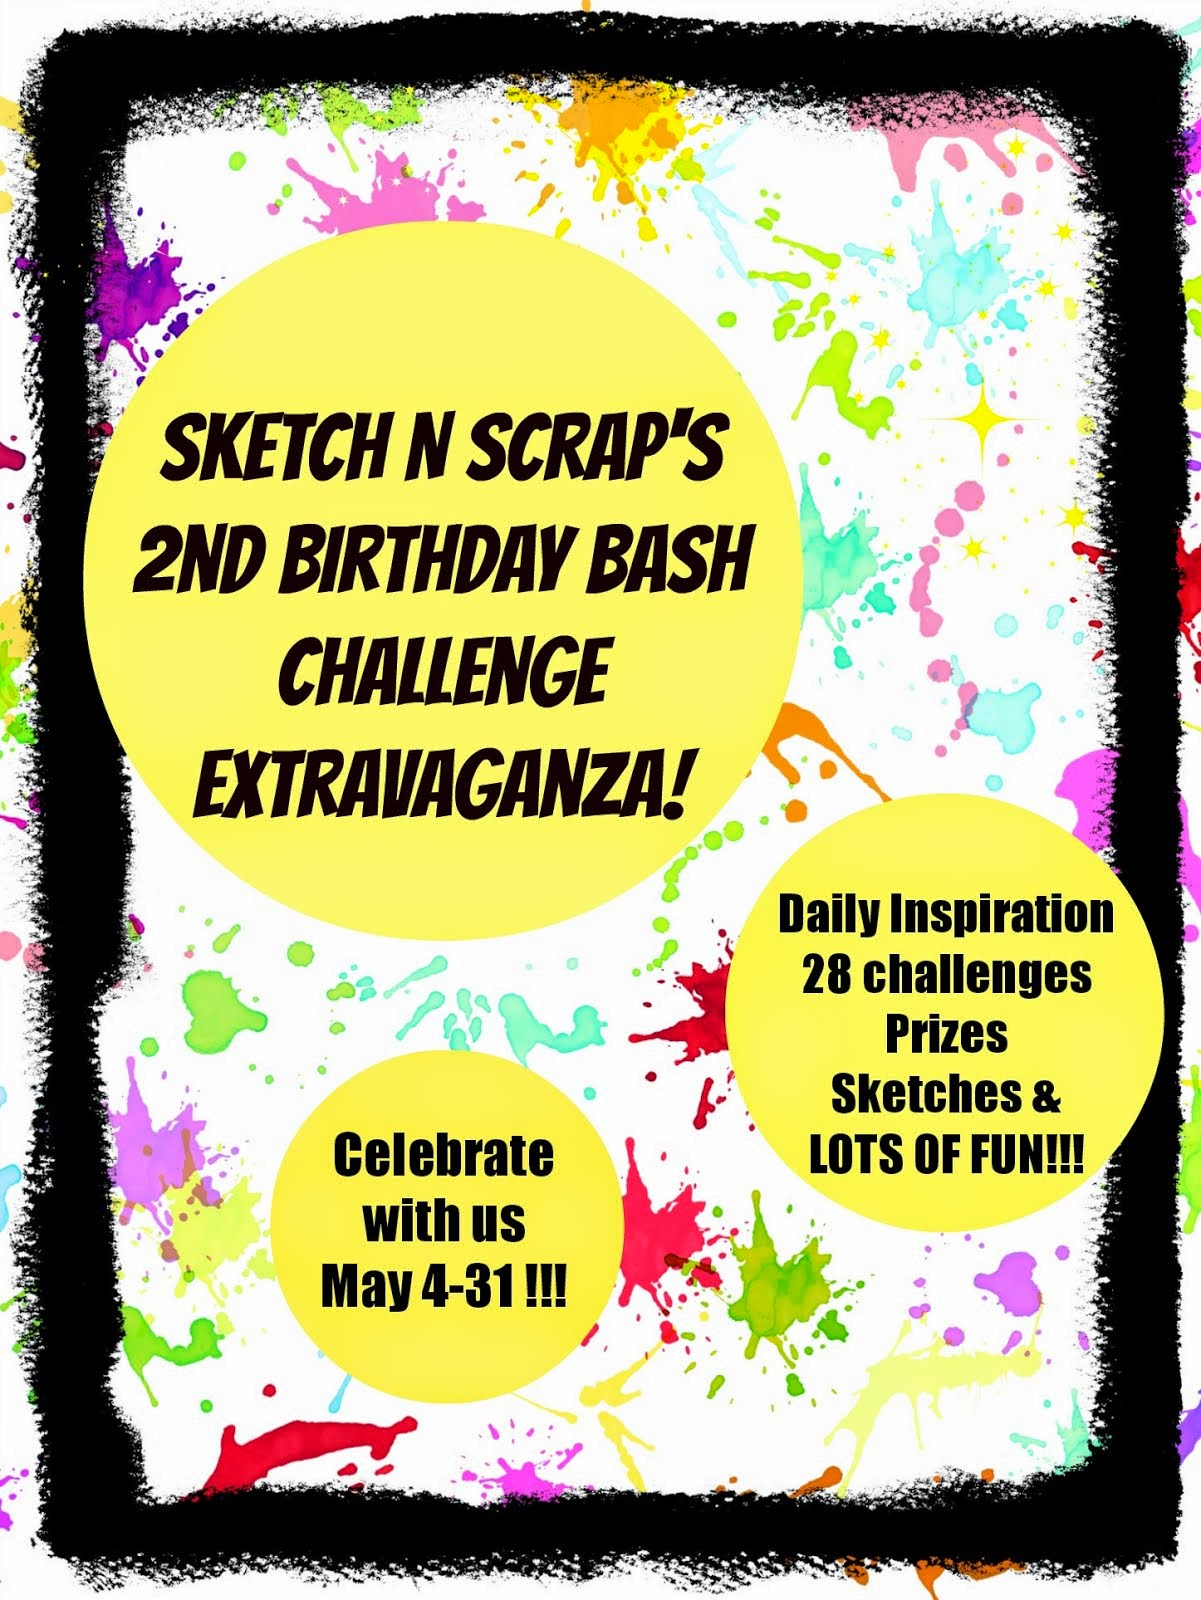 Sketch N Scrap is turning 2!